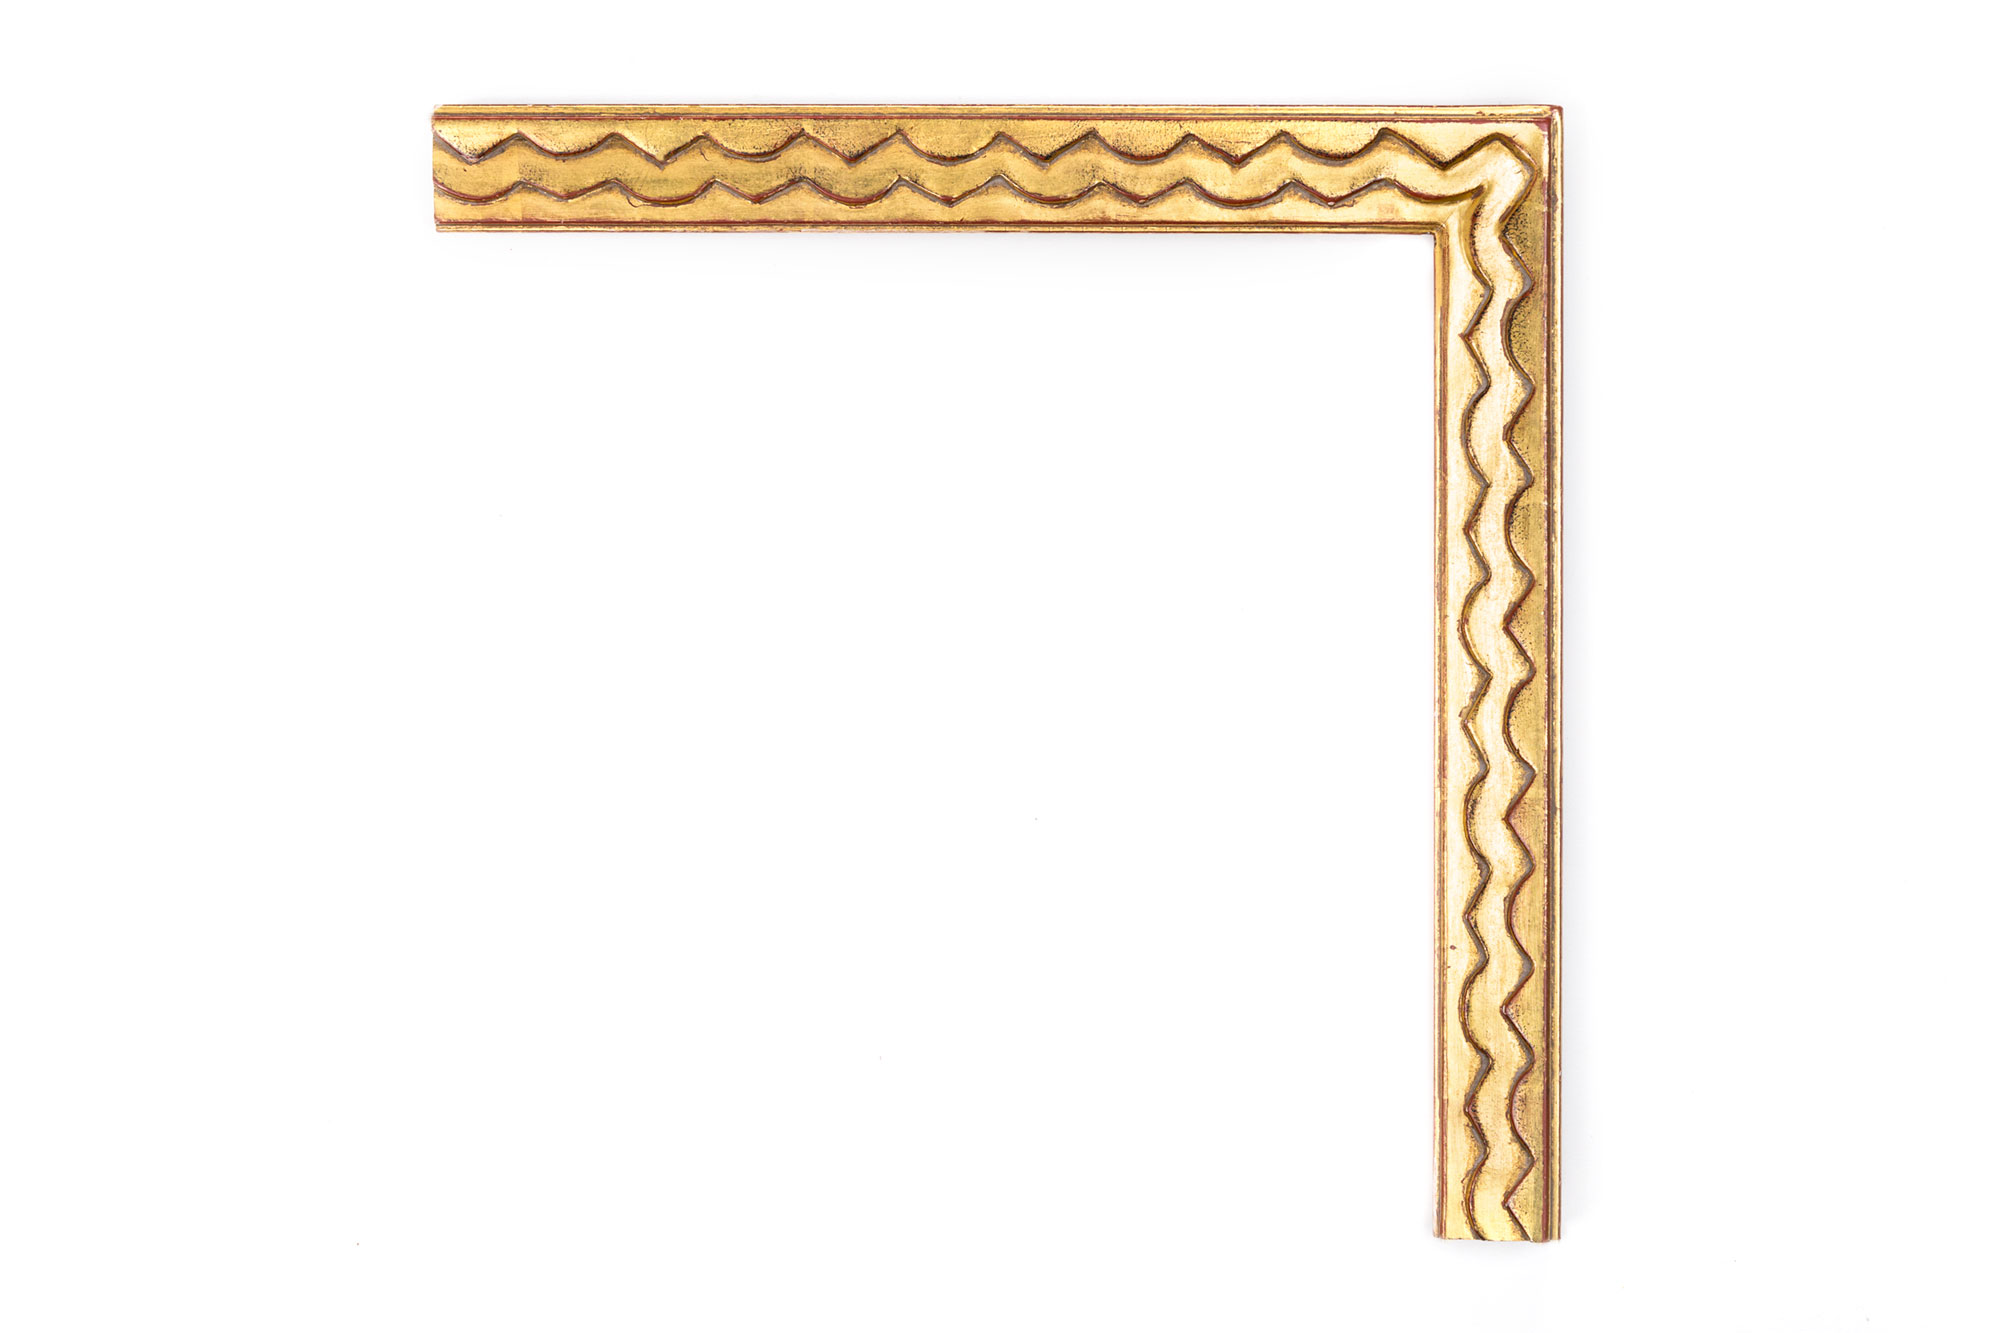 "Gold Picasso Wavy  1 1/4"" 22kt Gold Cubist-inspired Picasso frame, alternating zig zag step"